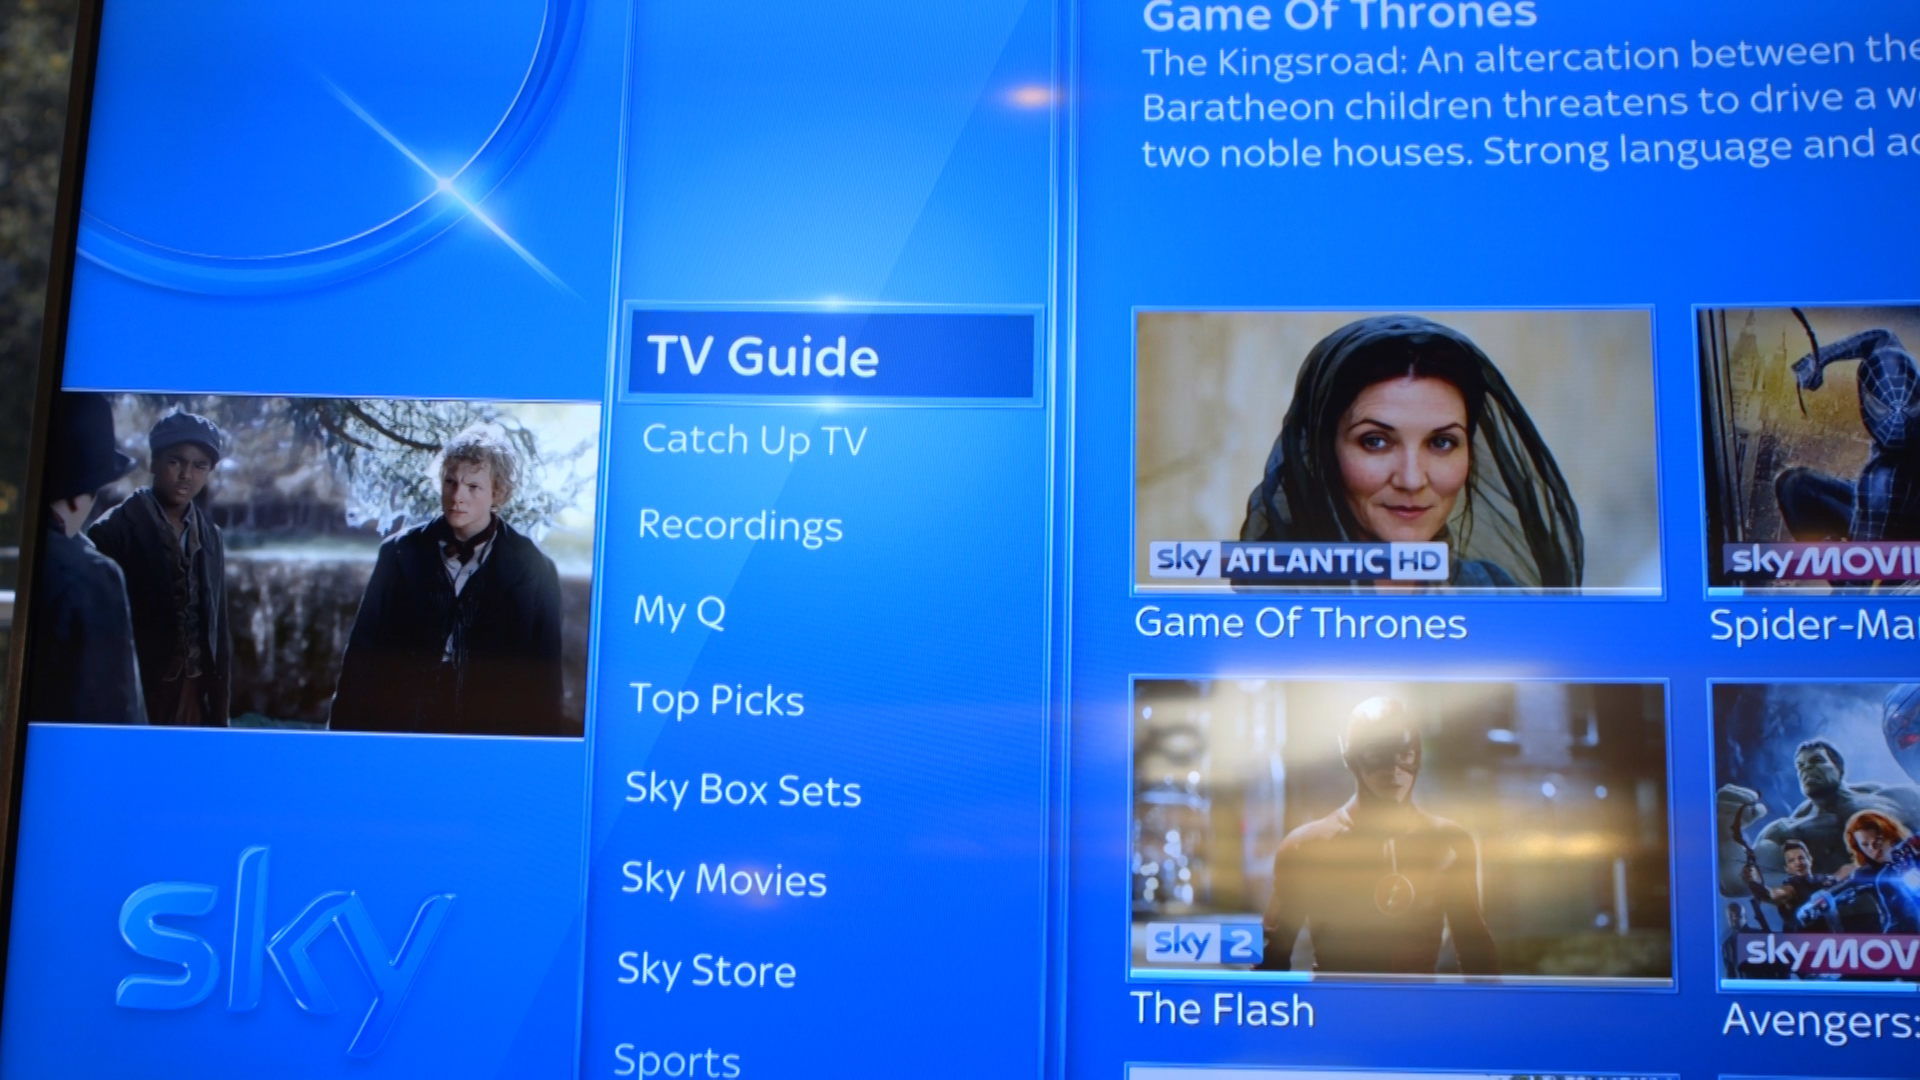 Video: Take a tour of Sky Q's new interface and features